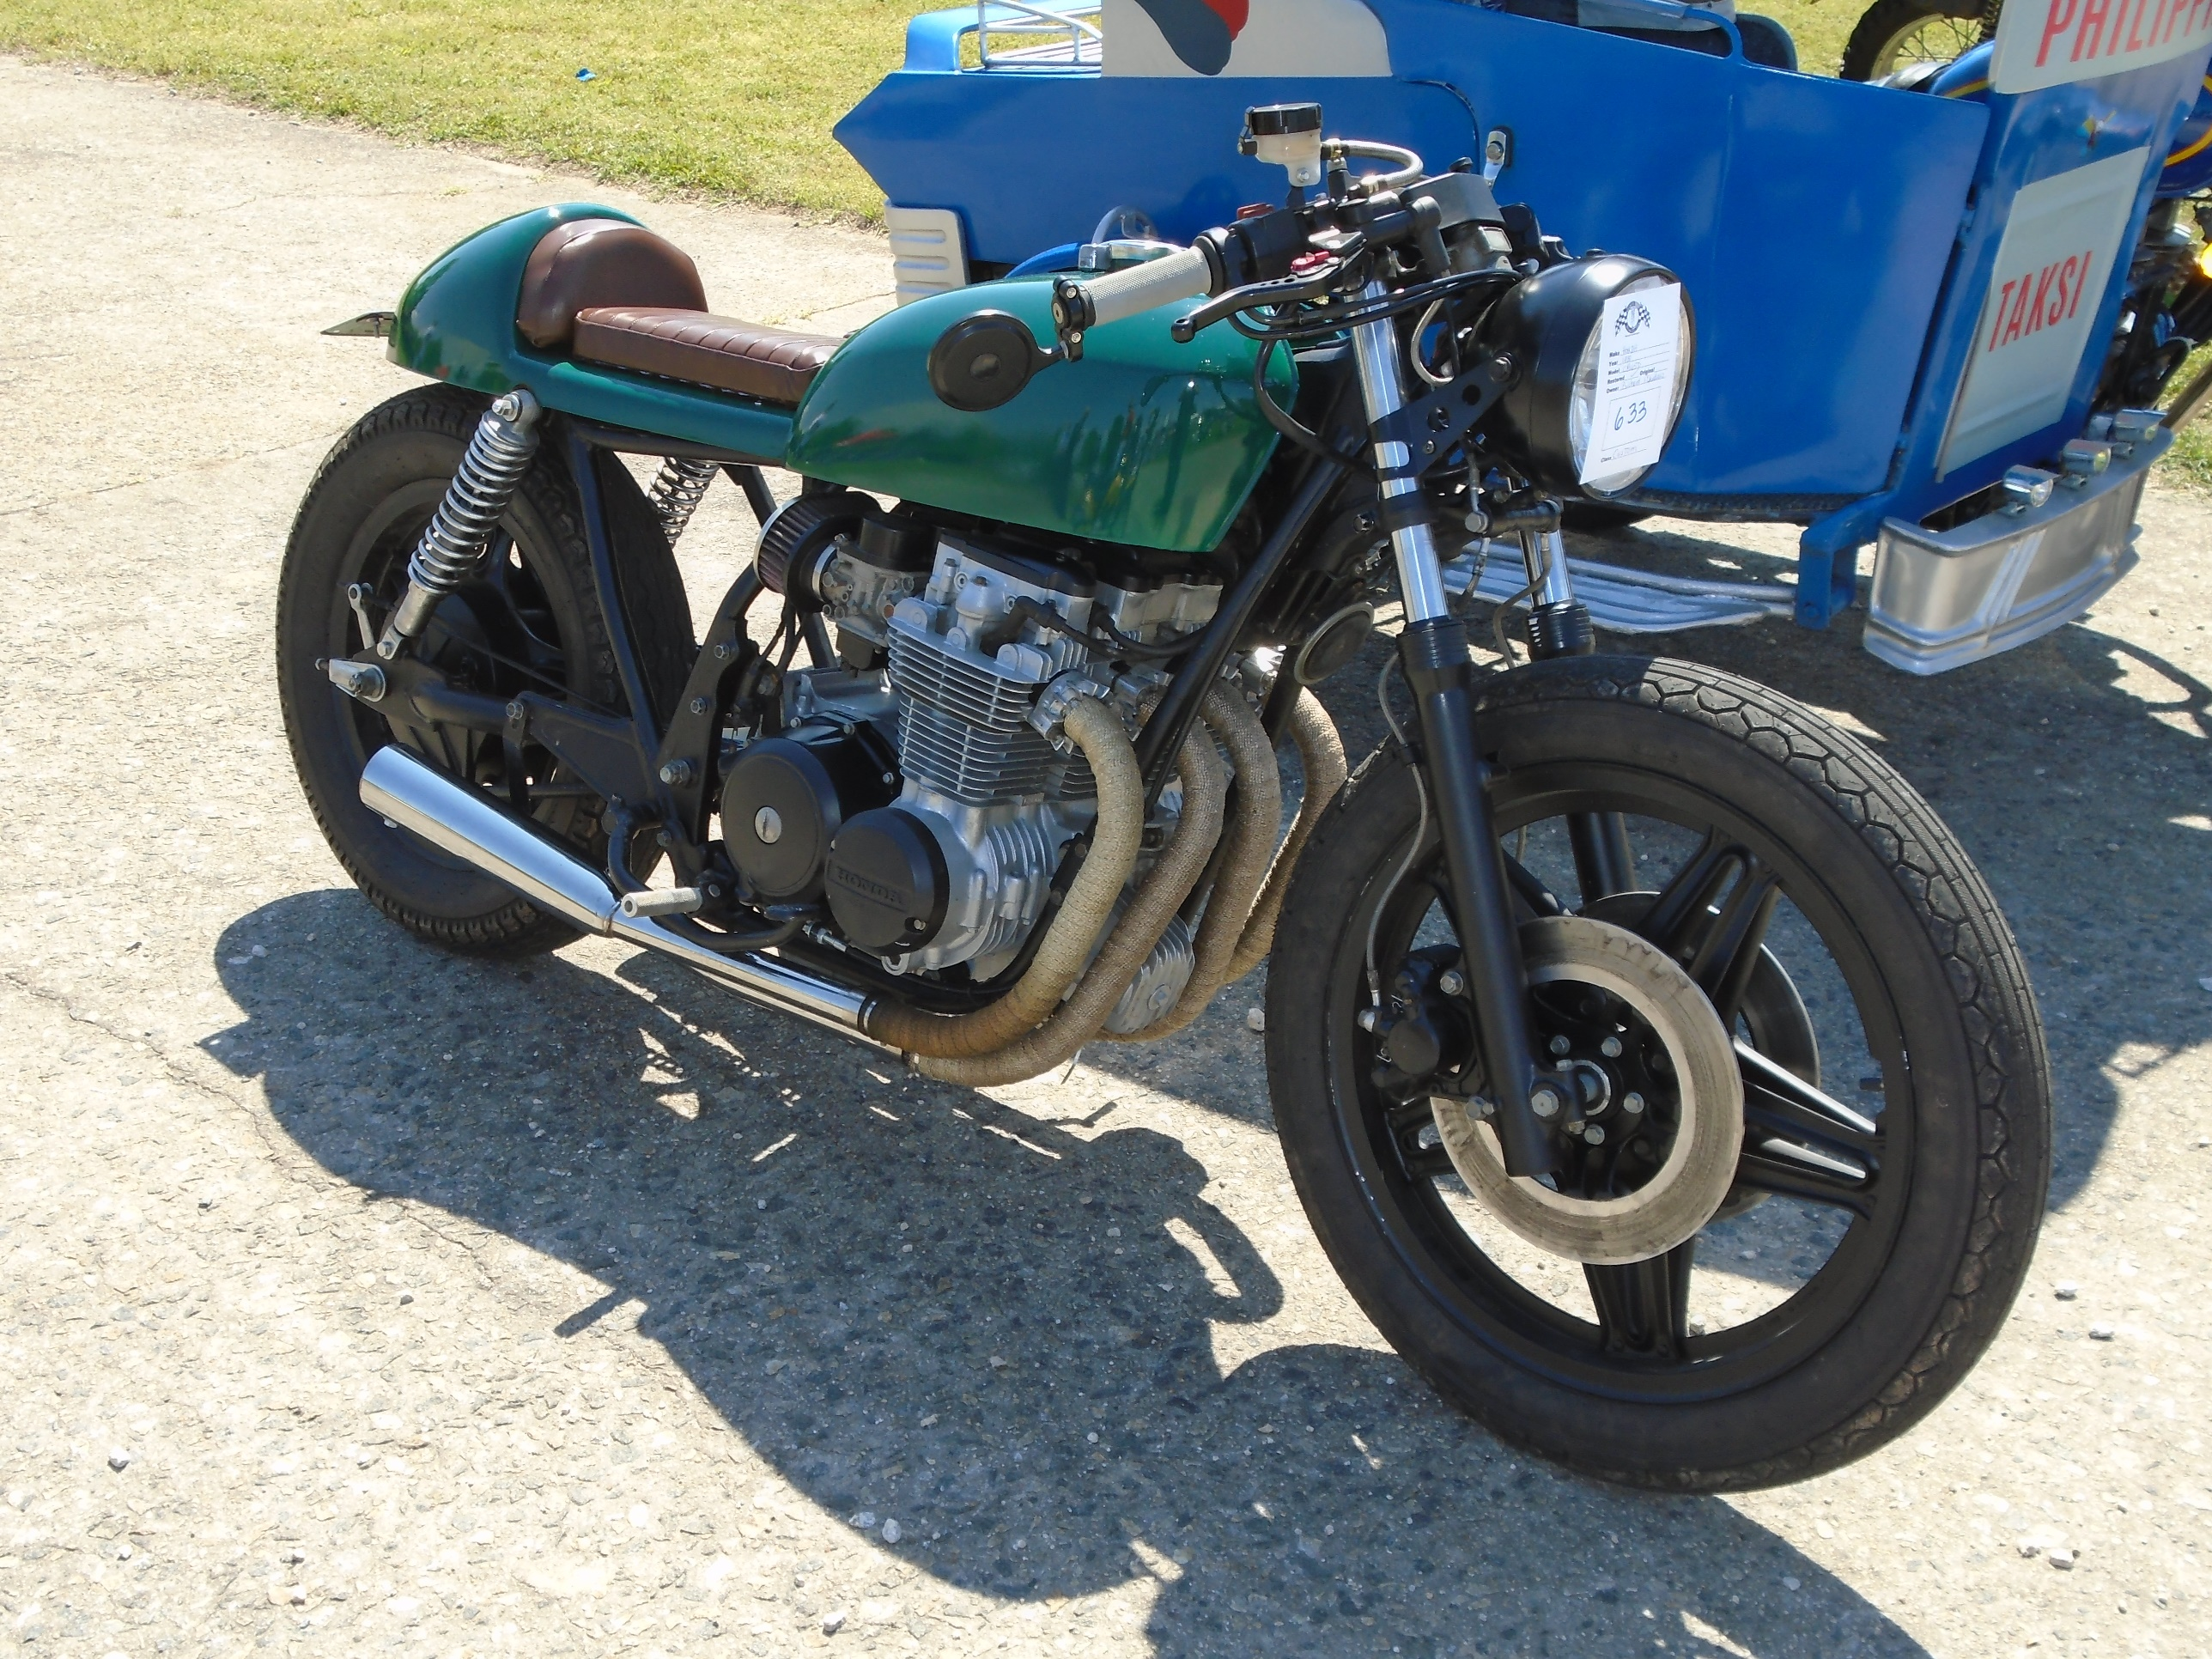 Cool Cafe Racers For Sale